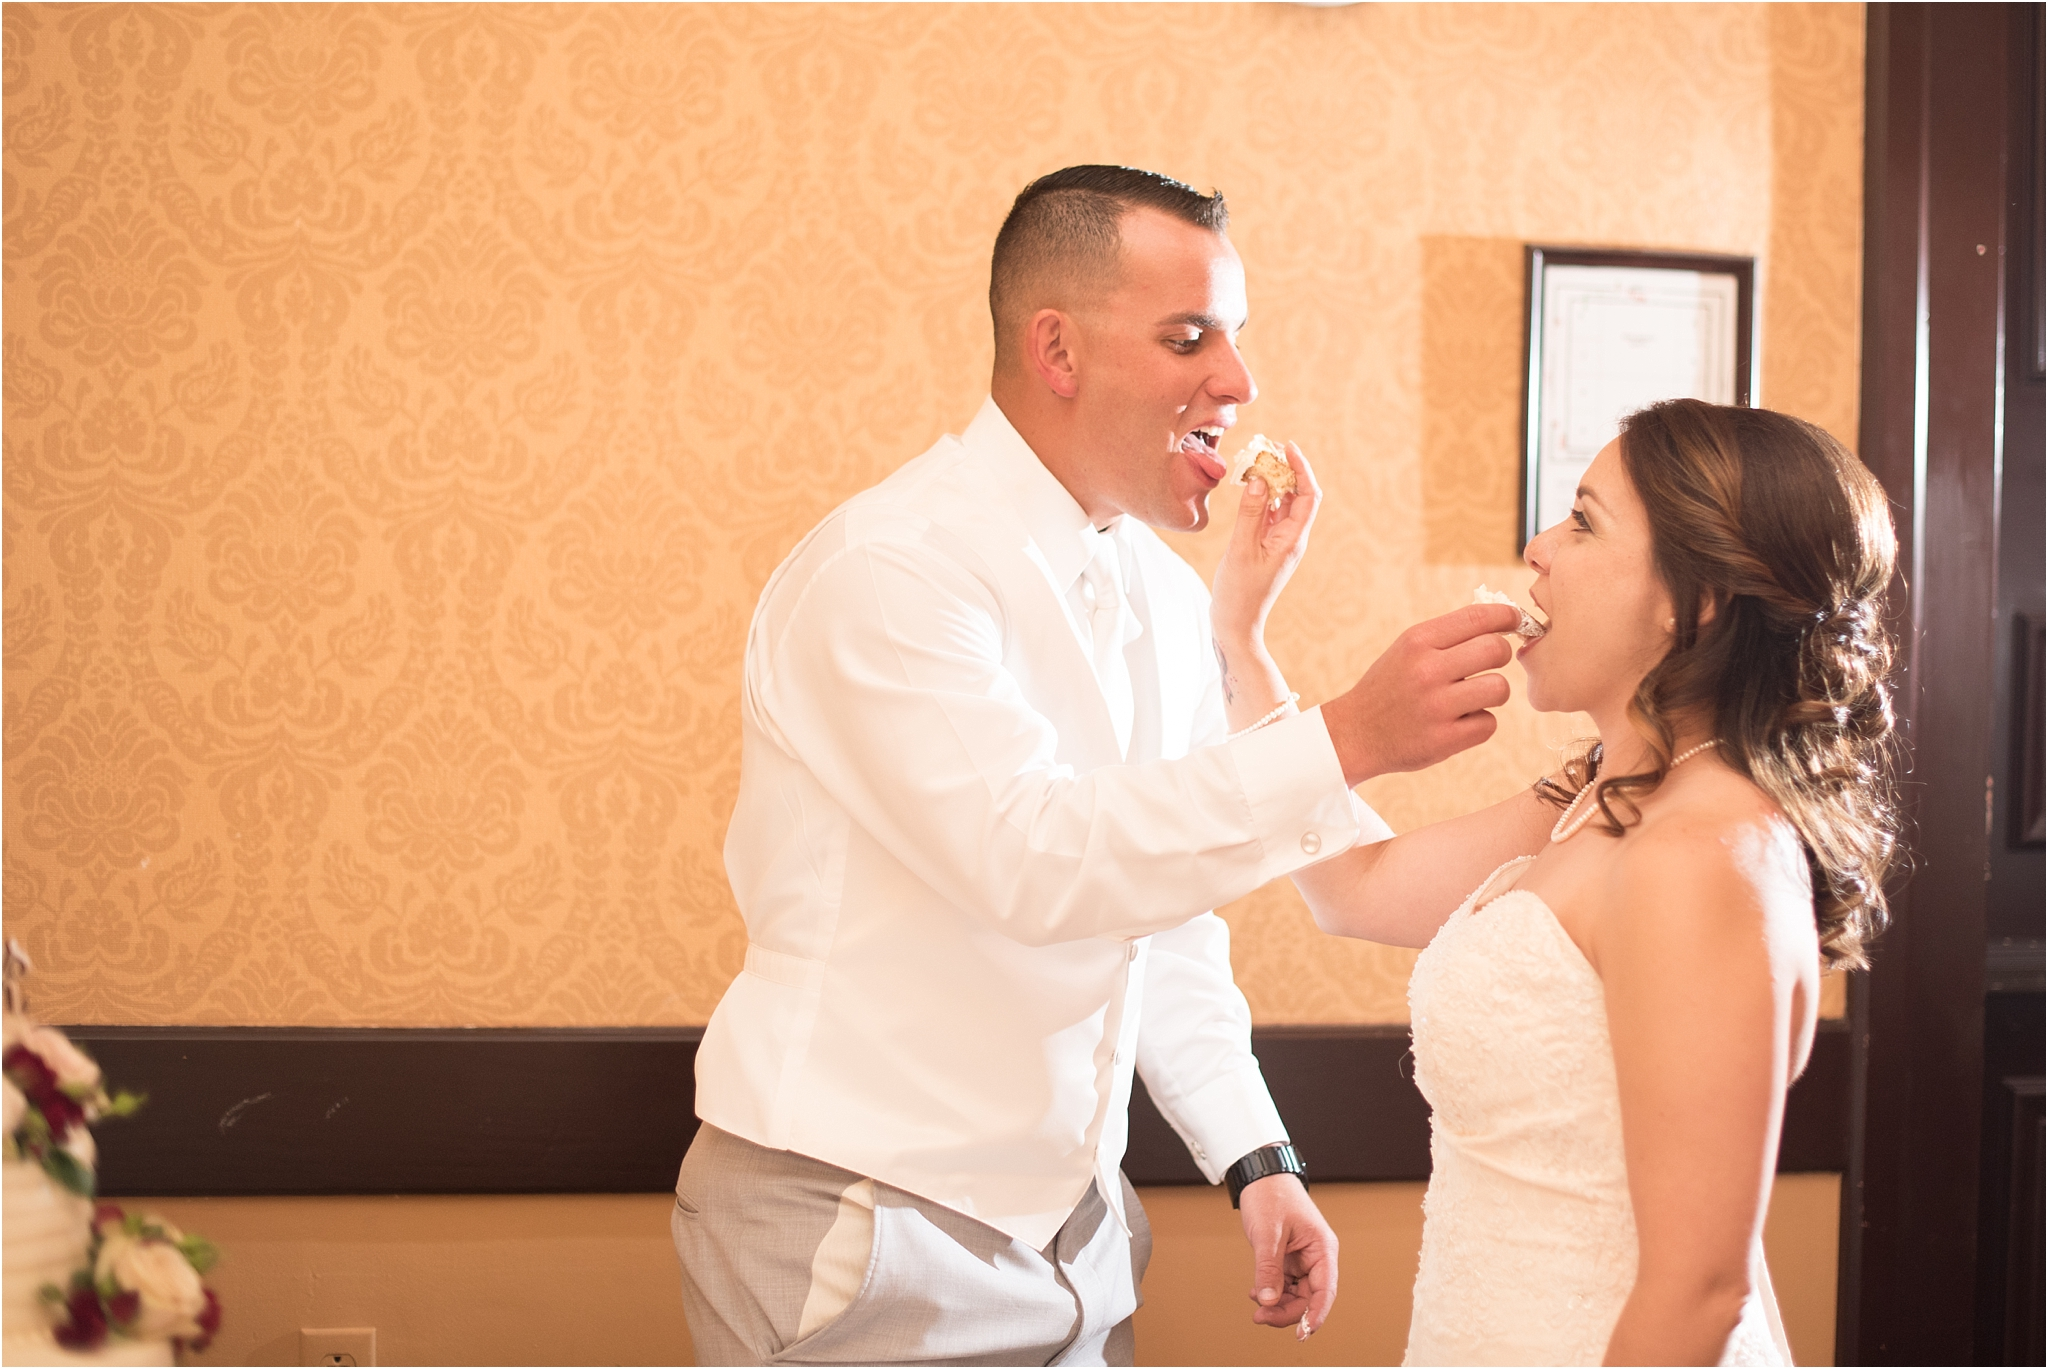 kayla kitts photography - albuquerque wedding photographer - hairpins and scissors - a cake odyssey - new mexico wedding photographer_0068.jpg